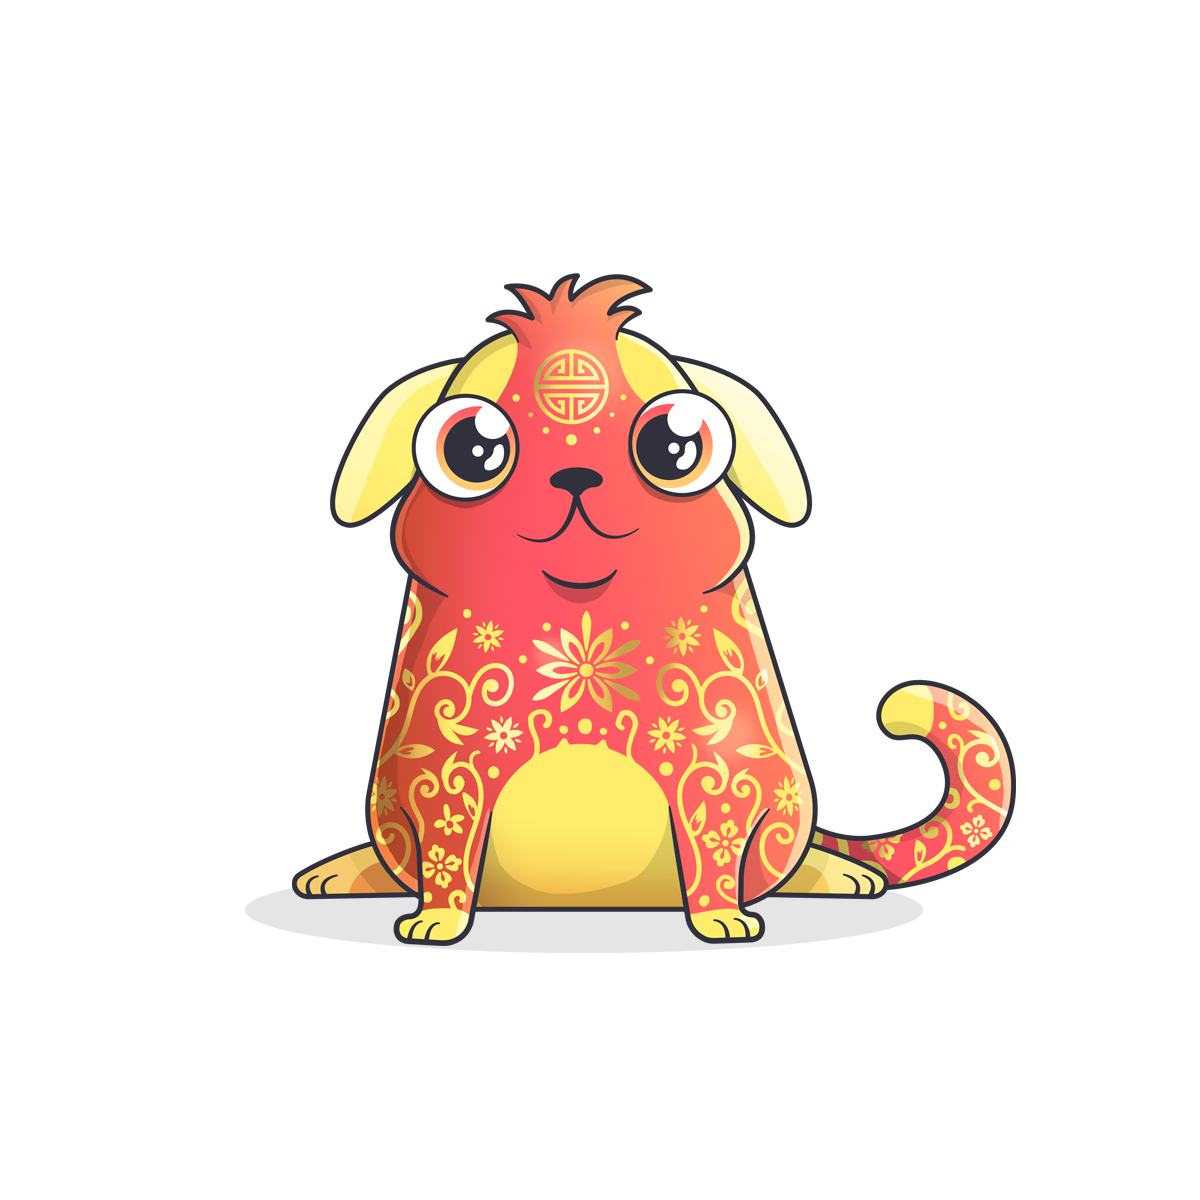 cryptokitty #587772